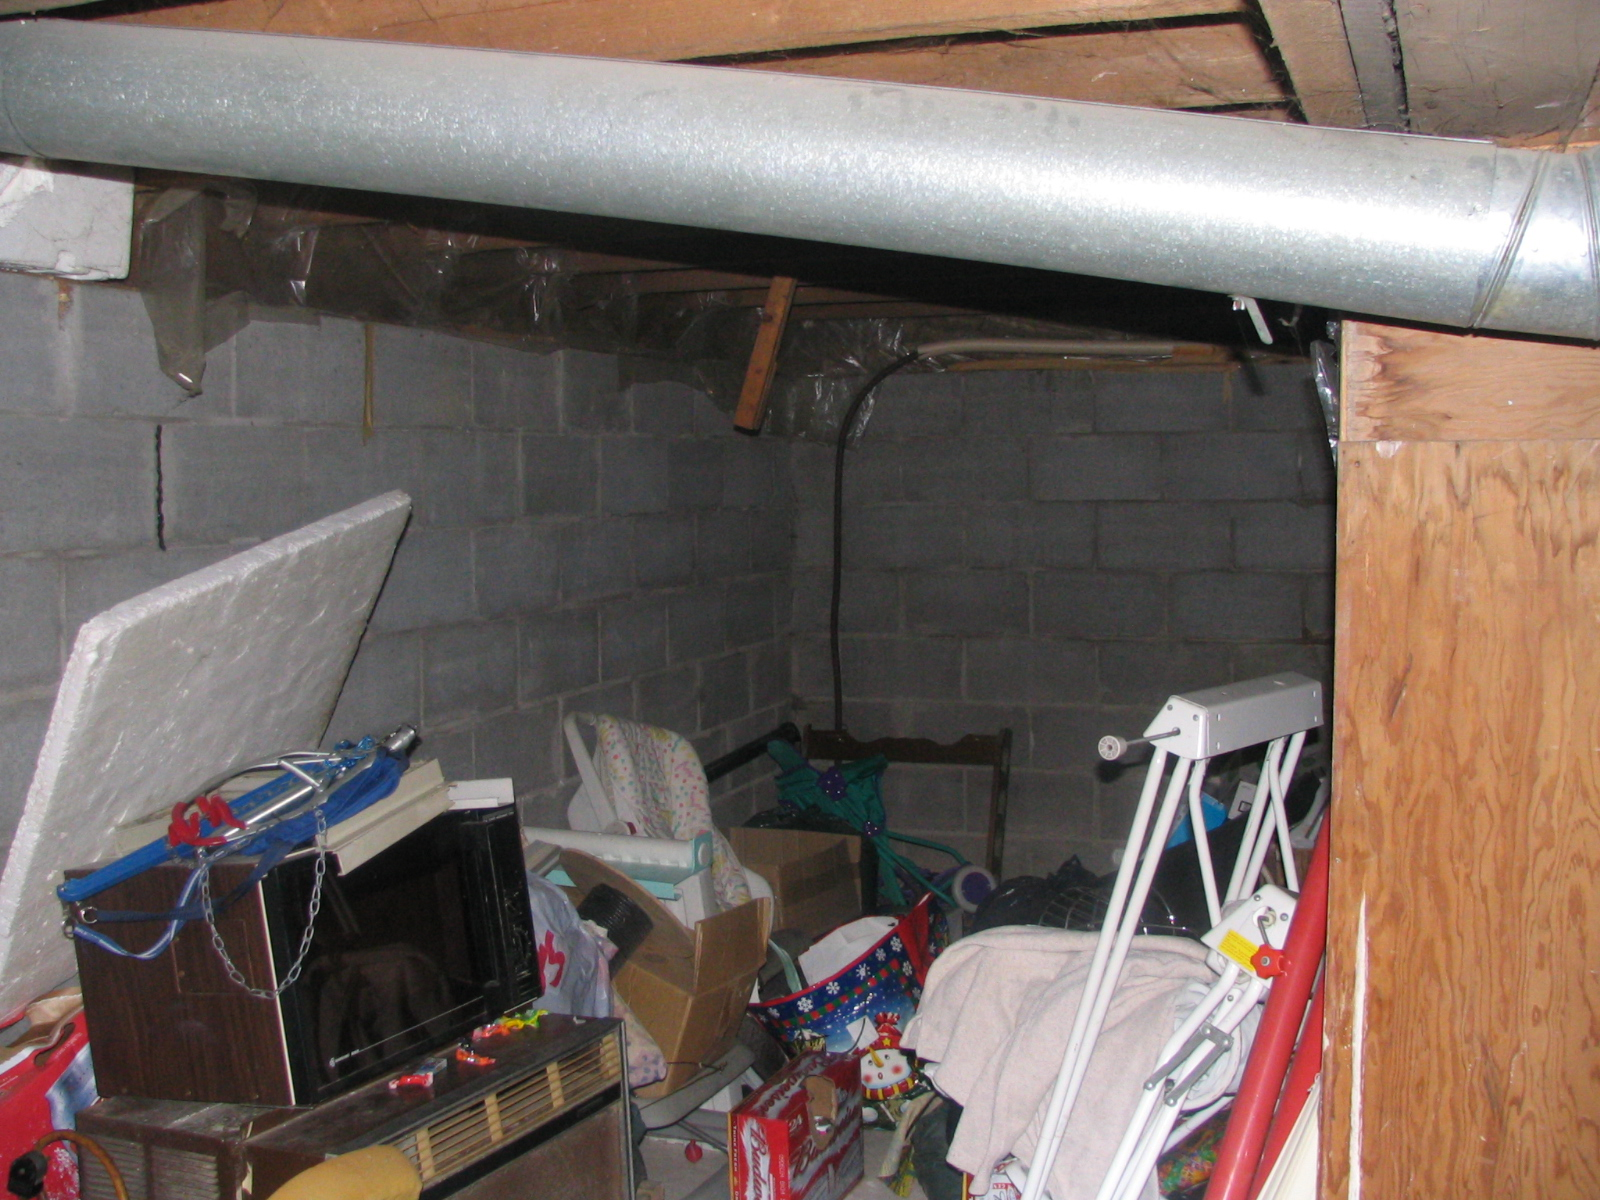 House Hunting In Wallaceburg Basement Wiring Canada Various Water Heaters And Utility Area The You Can Tell A Bit About Headroom With Seeing Austin Picture On Right